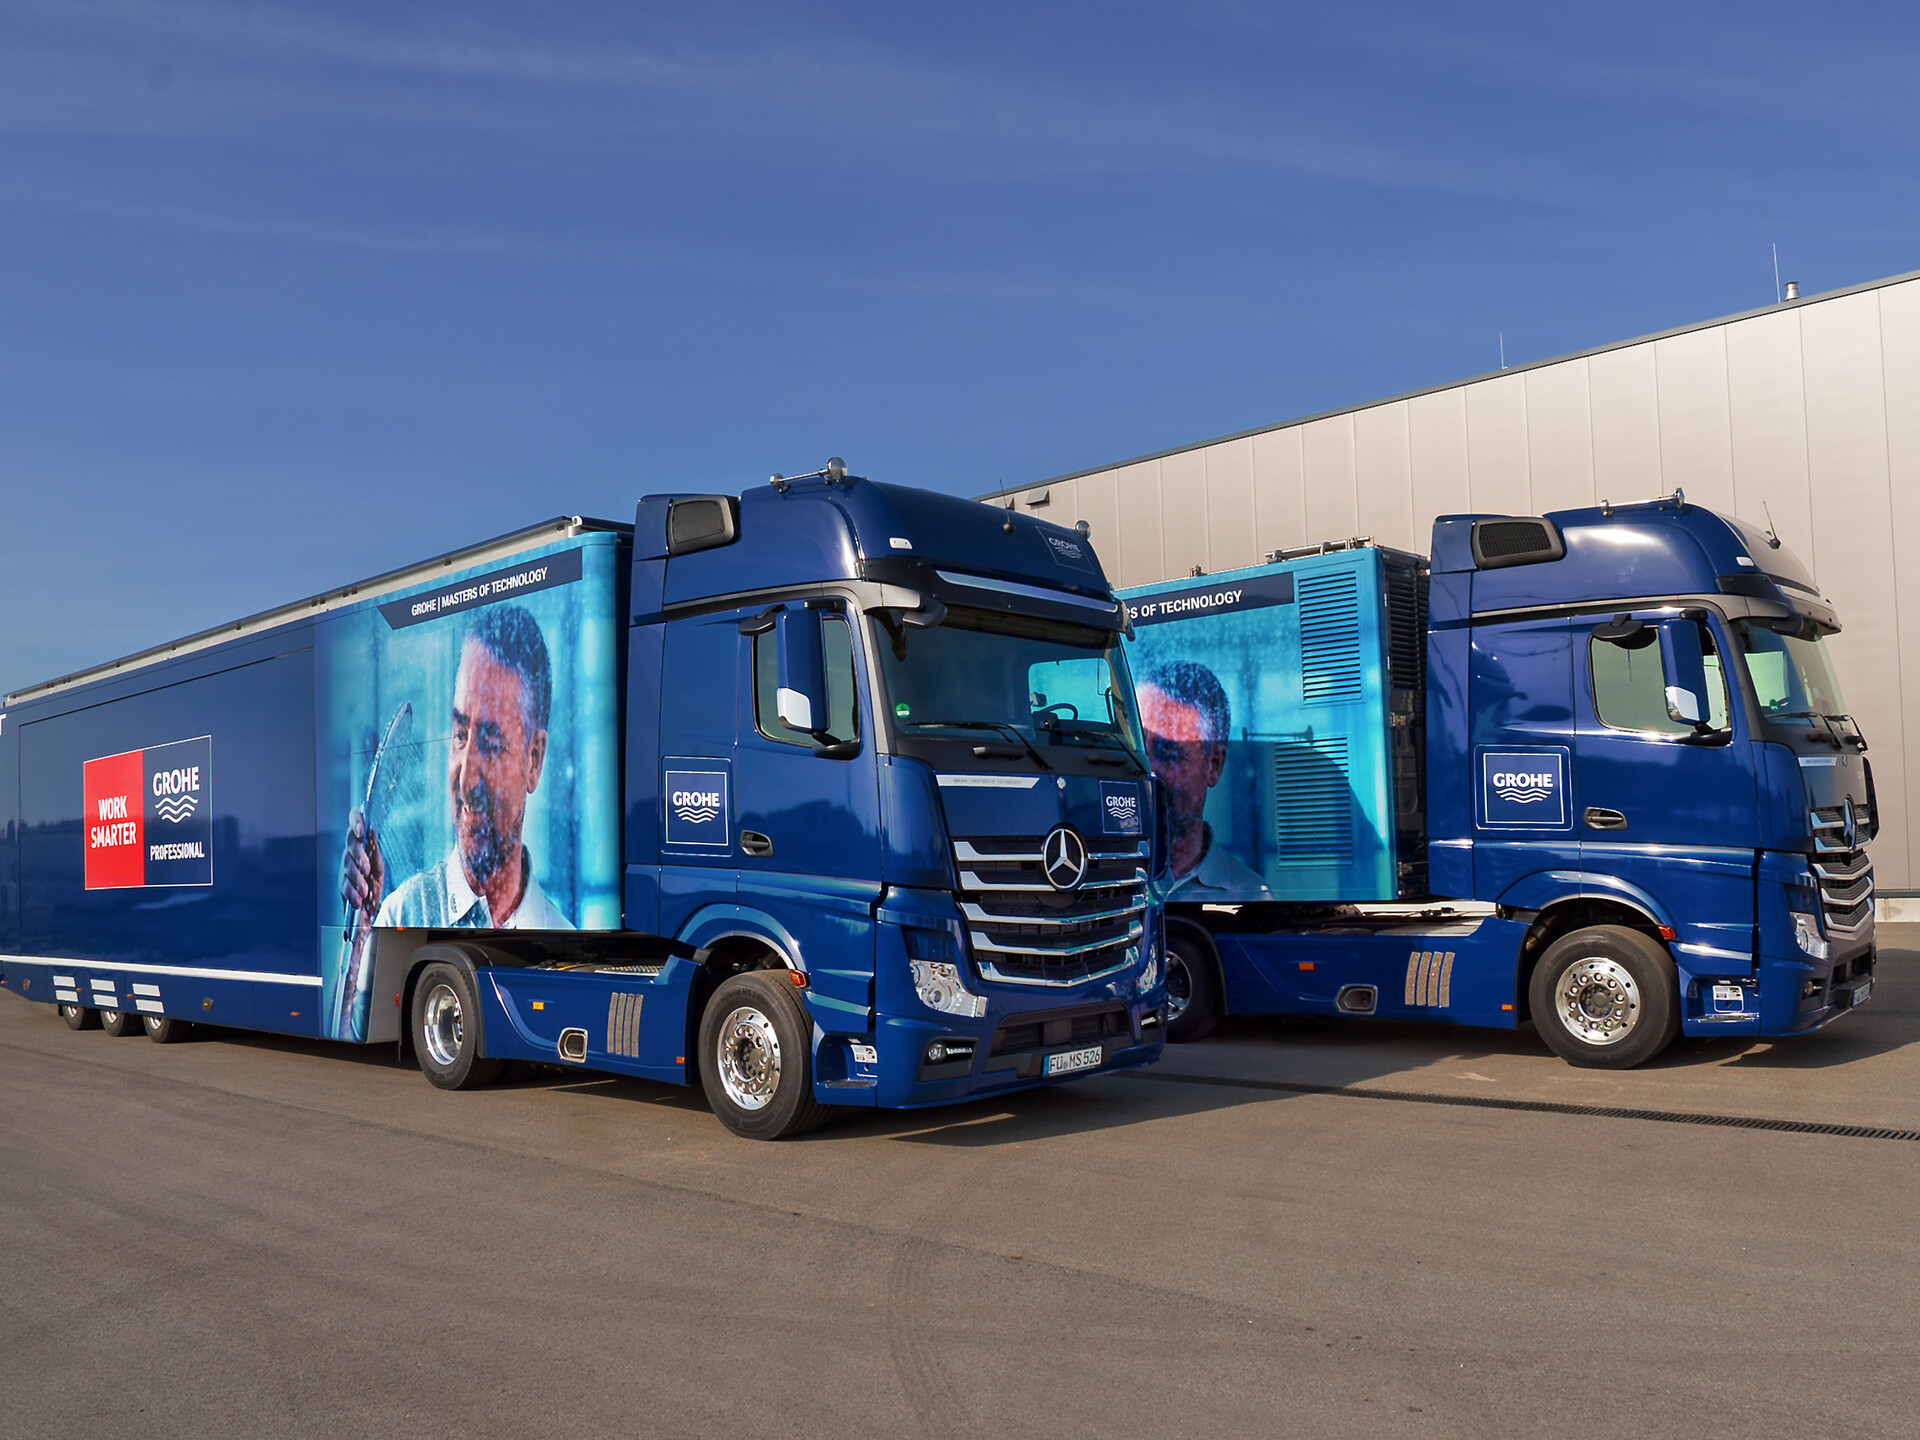 showtruck-grohe-actros-giant-1.jpg